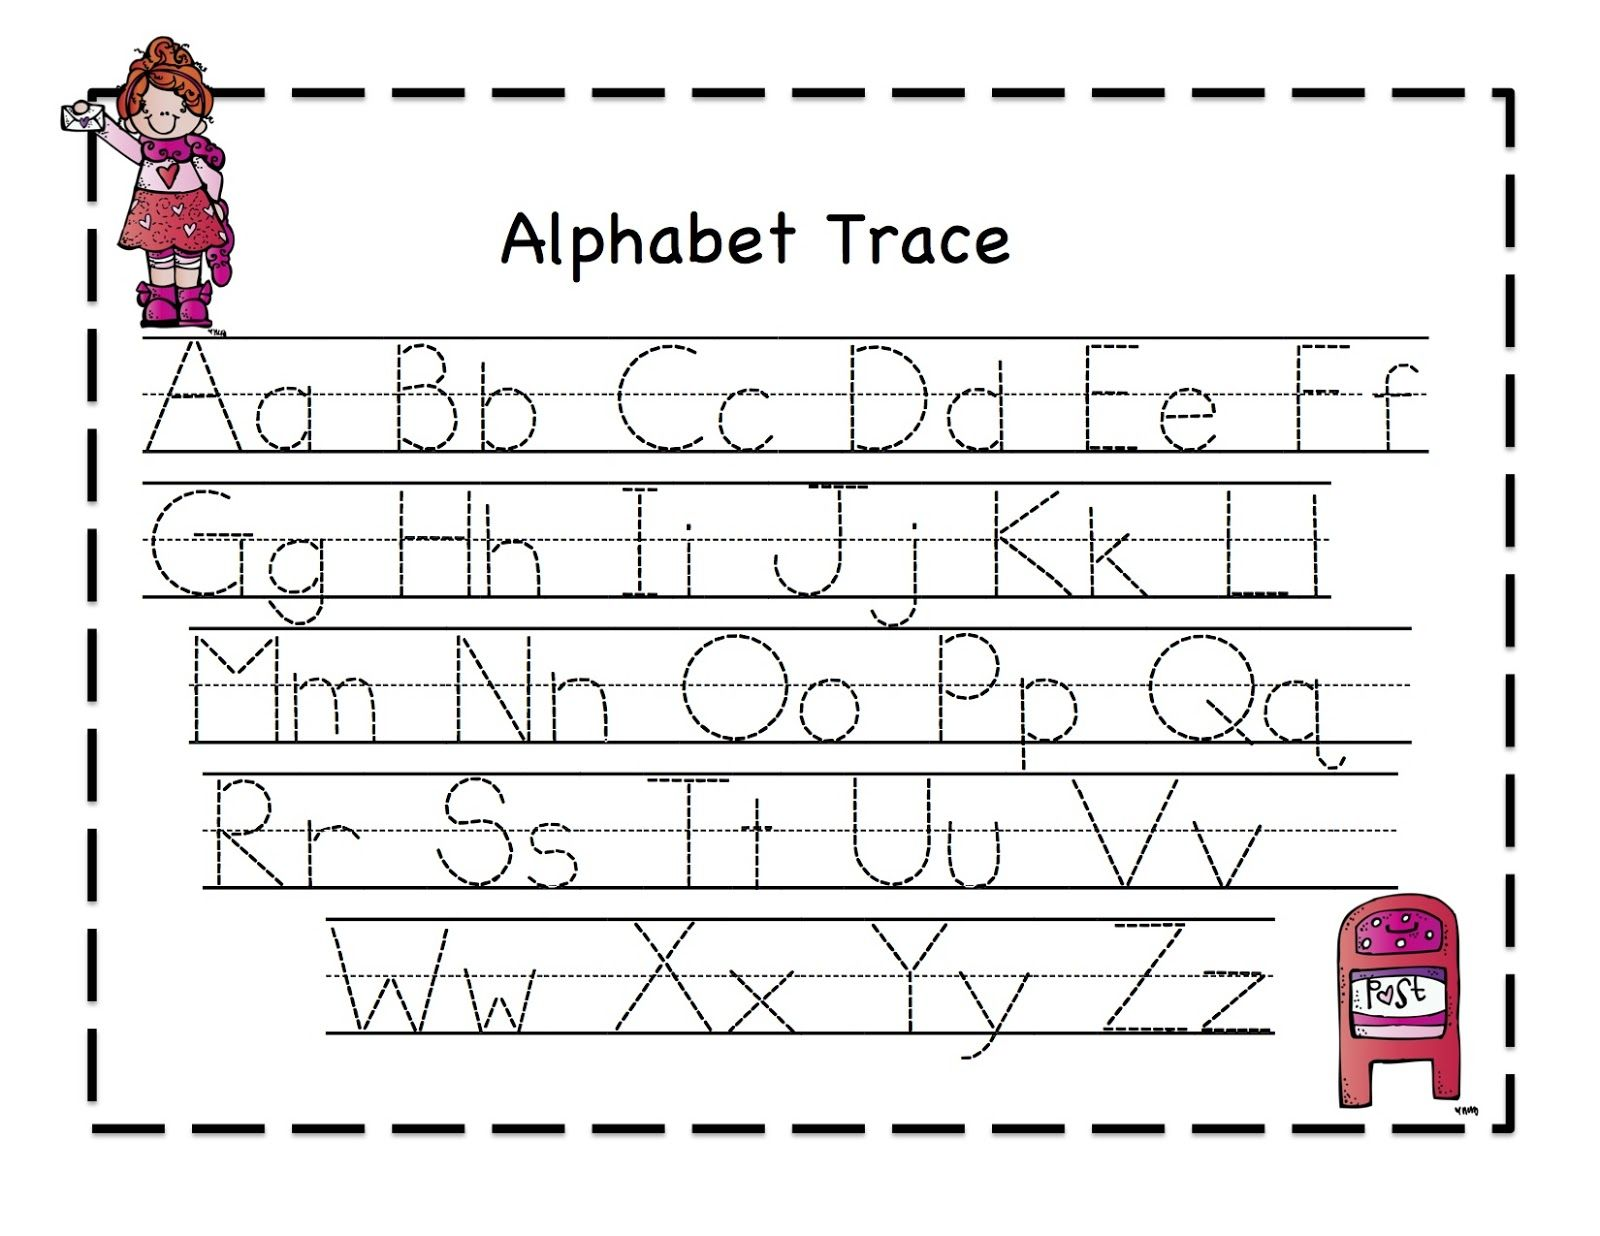 Worksheets Abc For Kindergarten Worksheets abc tracing sheets for preschool kids kiddo shelter alphabet shelter